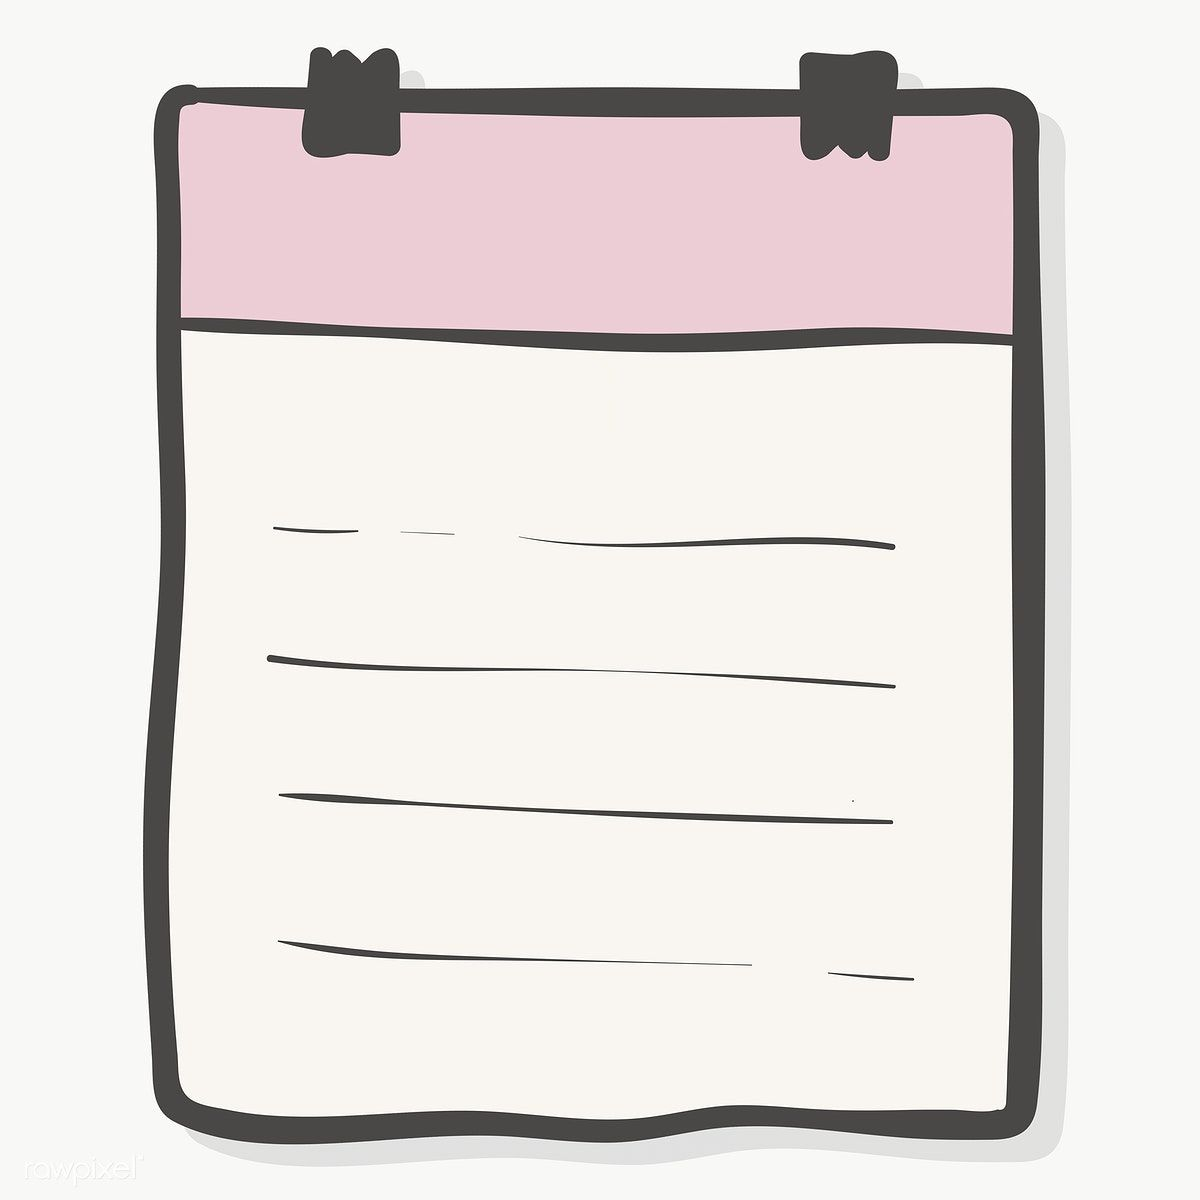 Blank Lined Paper Note With Binder Paper Clips Transparent Png Free Image By Rawpixel Com Chayanit Note Paper Binder Paper Paper Background Texture